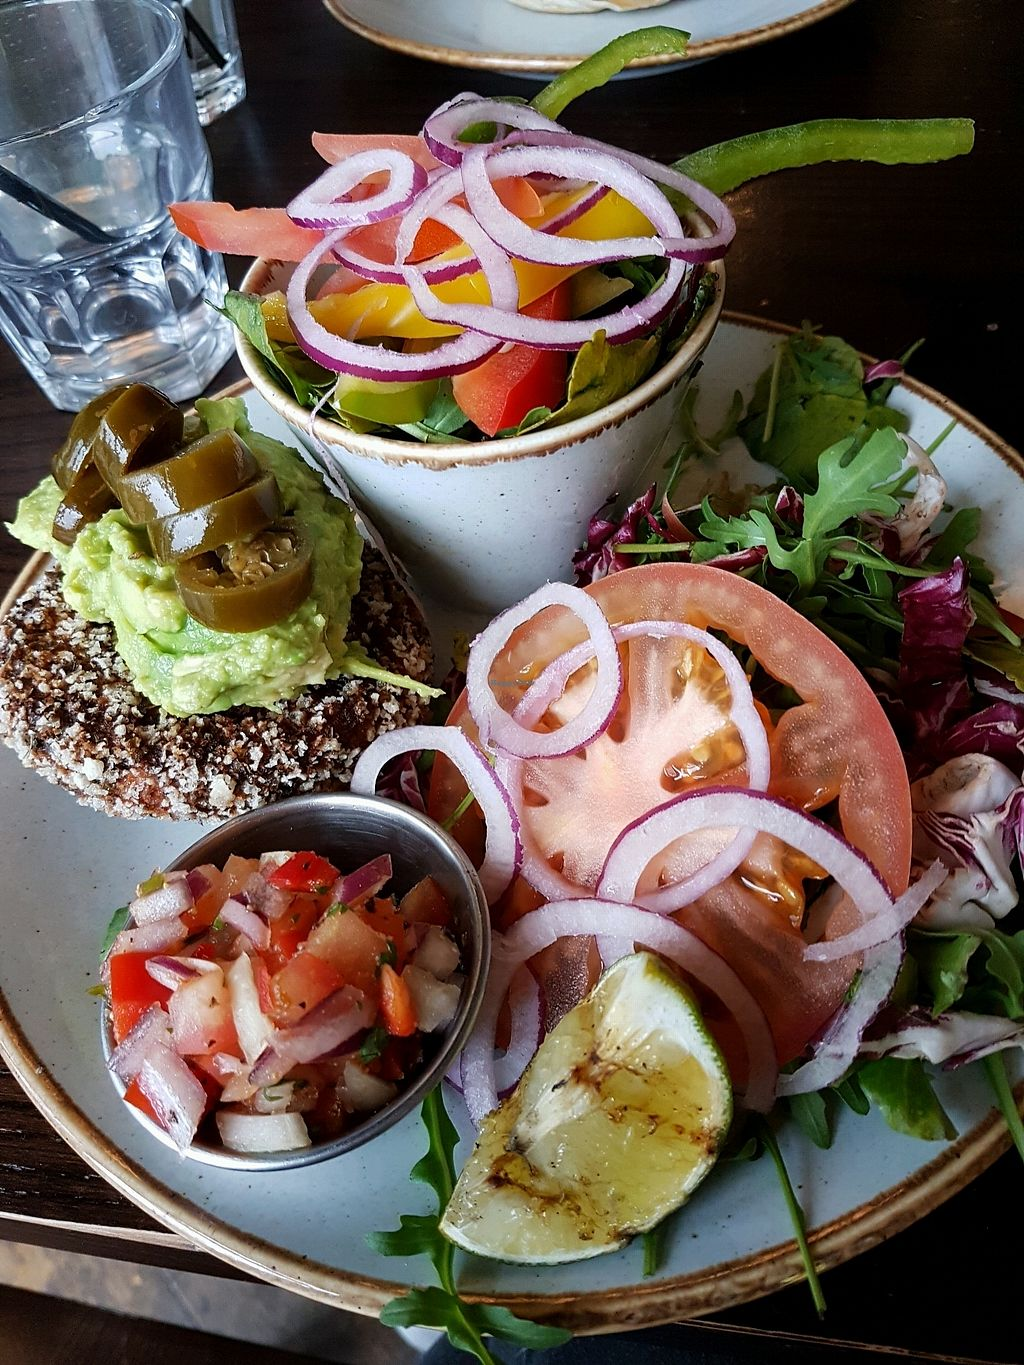 """Photo of Handmade Burger Company - Bullring  by <a href=""""/members/profile/Hoggy"""">Hoggy</a> <br/>Bunless Veg-Mex <br/> January 13, 2018  - <a href='/contact/abuse/image/78254/346187'>Report</a>"""